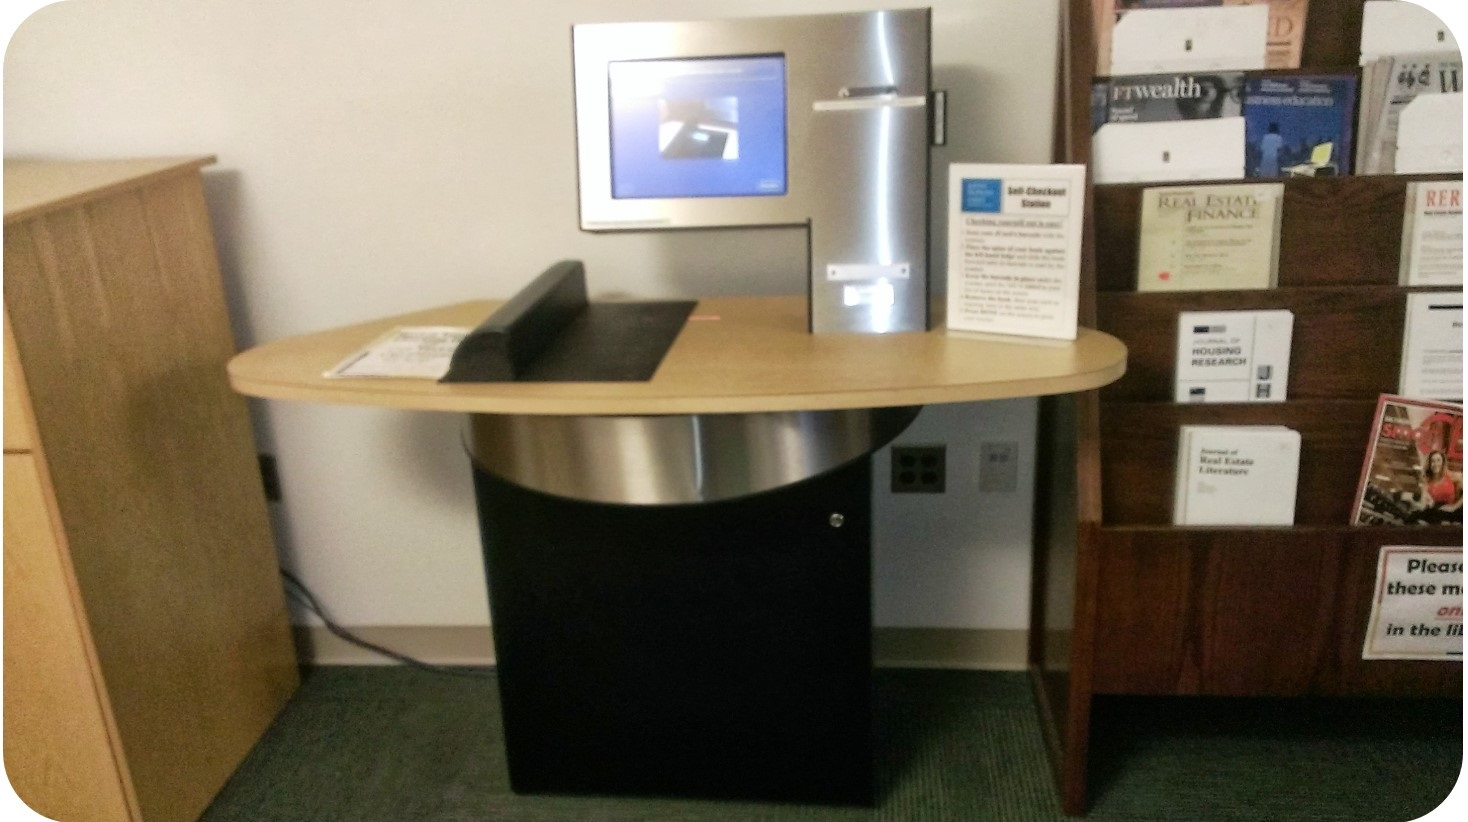 4. This is the self-checkout unit at the Harbor East Library.  It's just inside the main library door, on the left